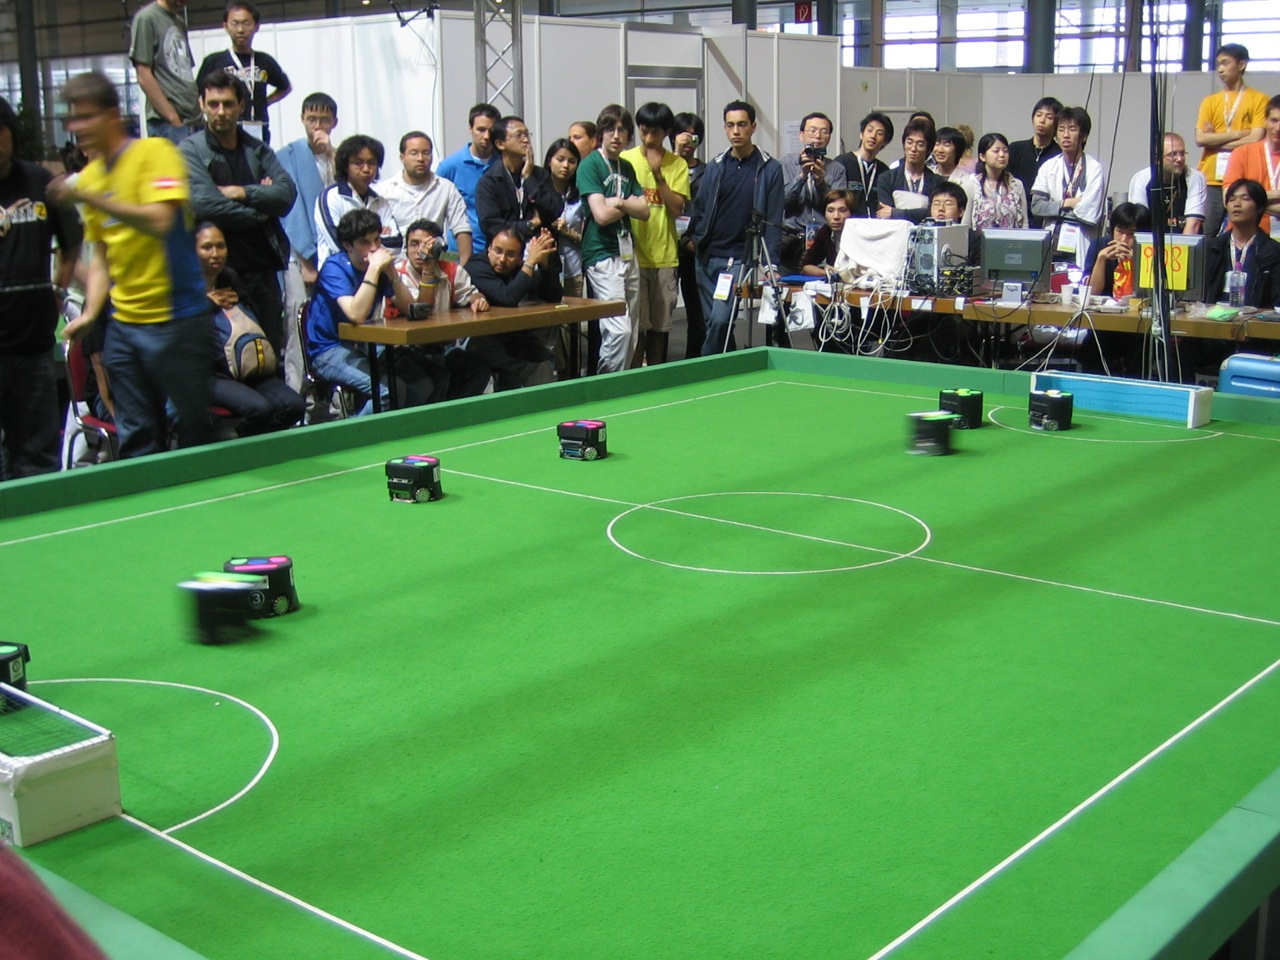 Robots compete to be the best